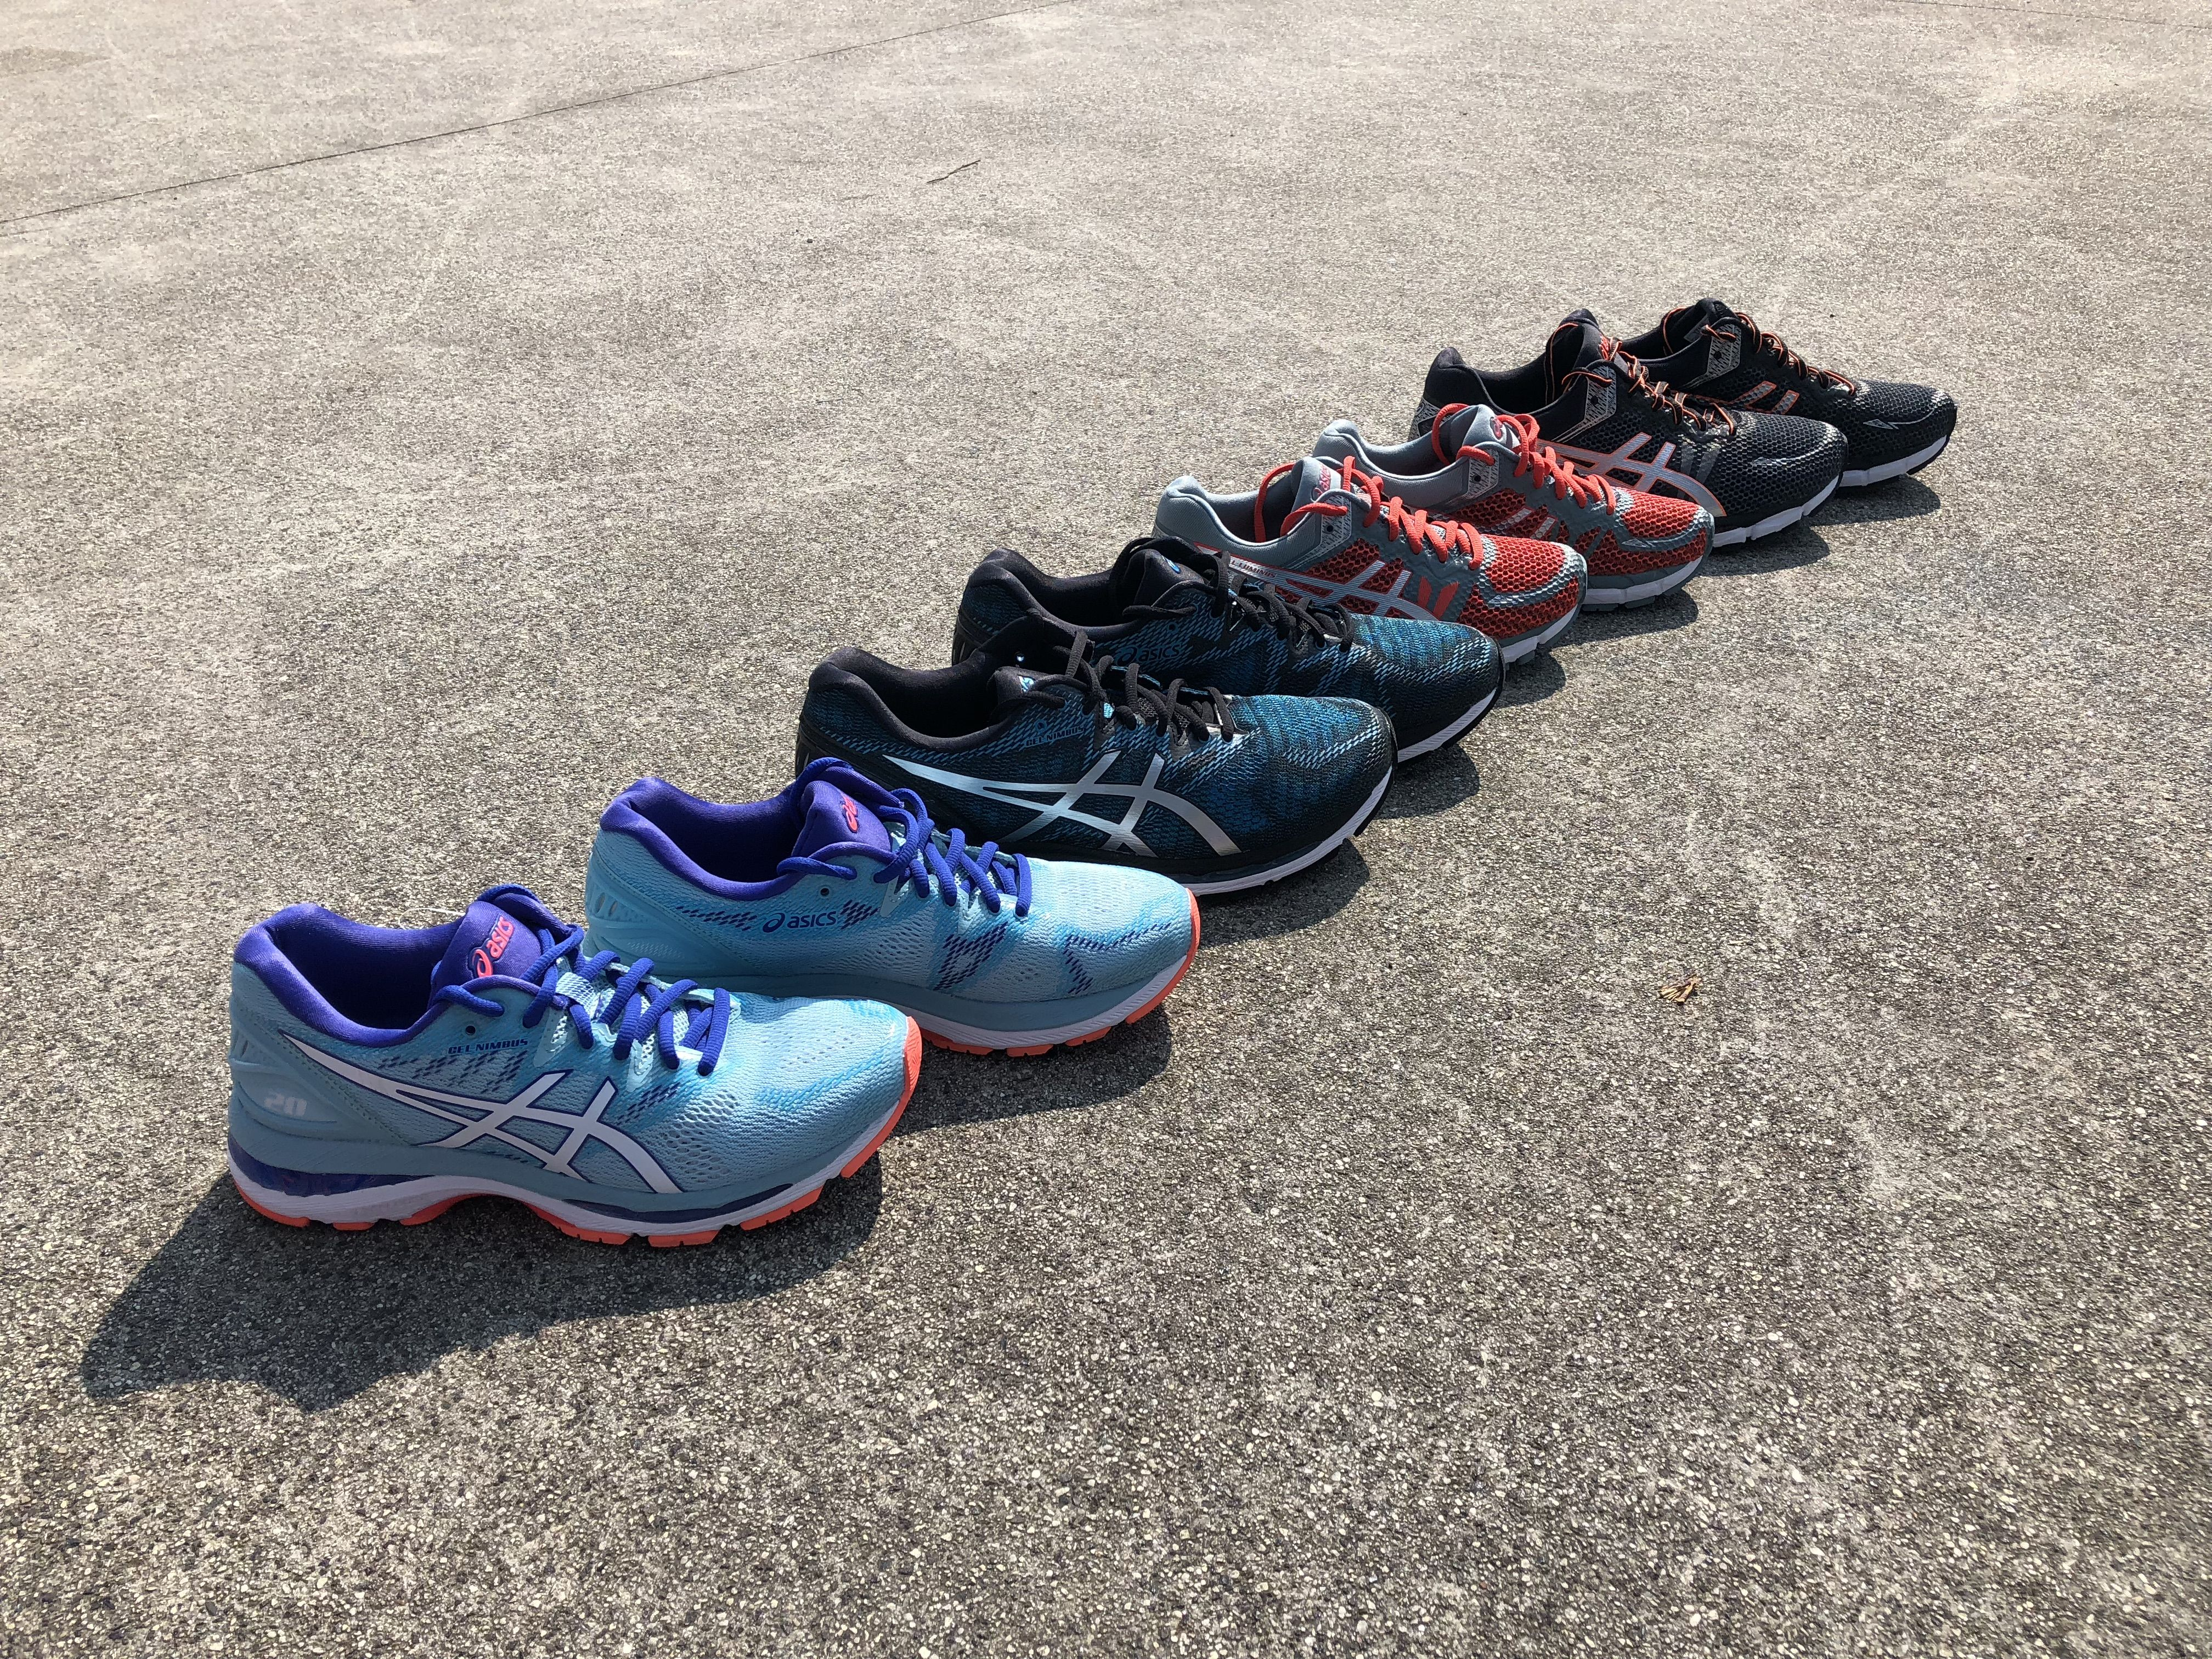 New Asics running collection available